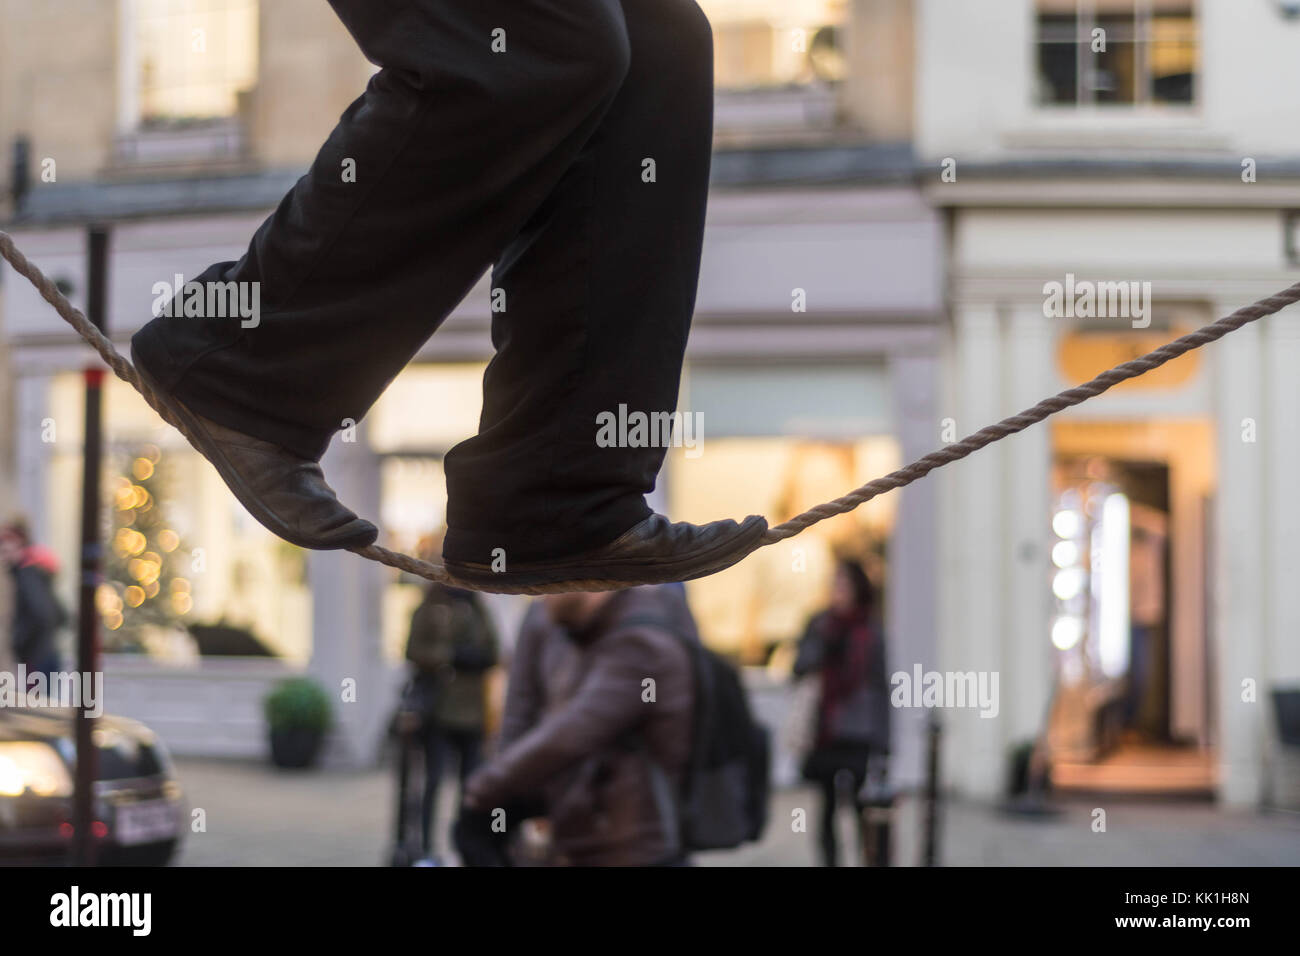 Tight rope walker's legs. Feet of acrobat balancing on rope in busy high street with passers by - Stock Image